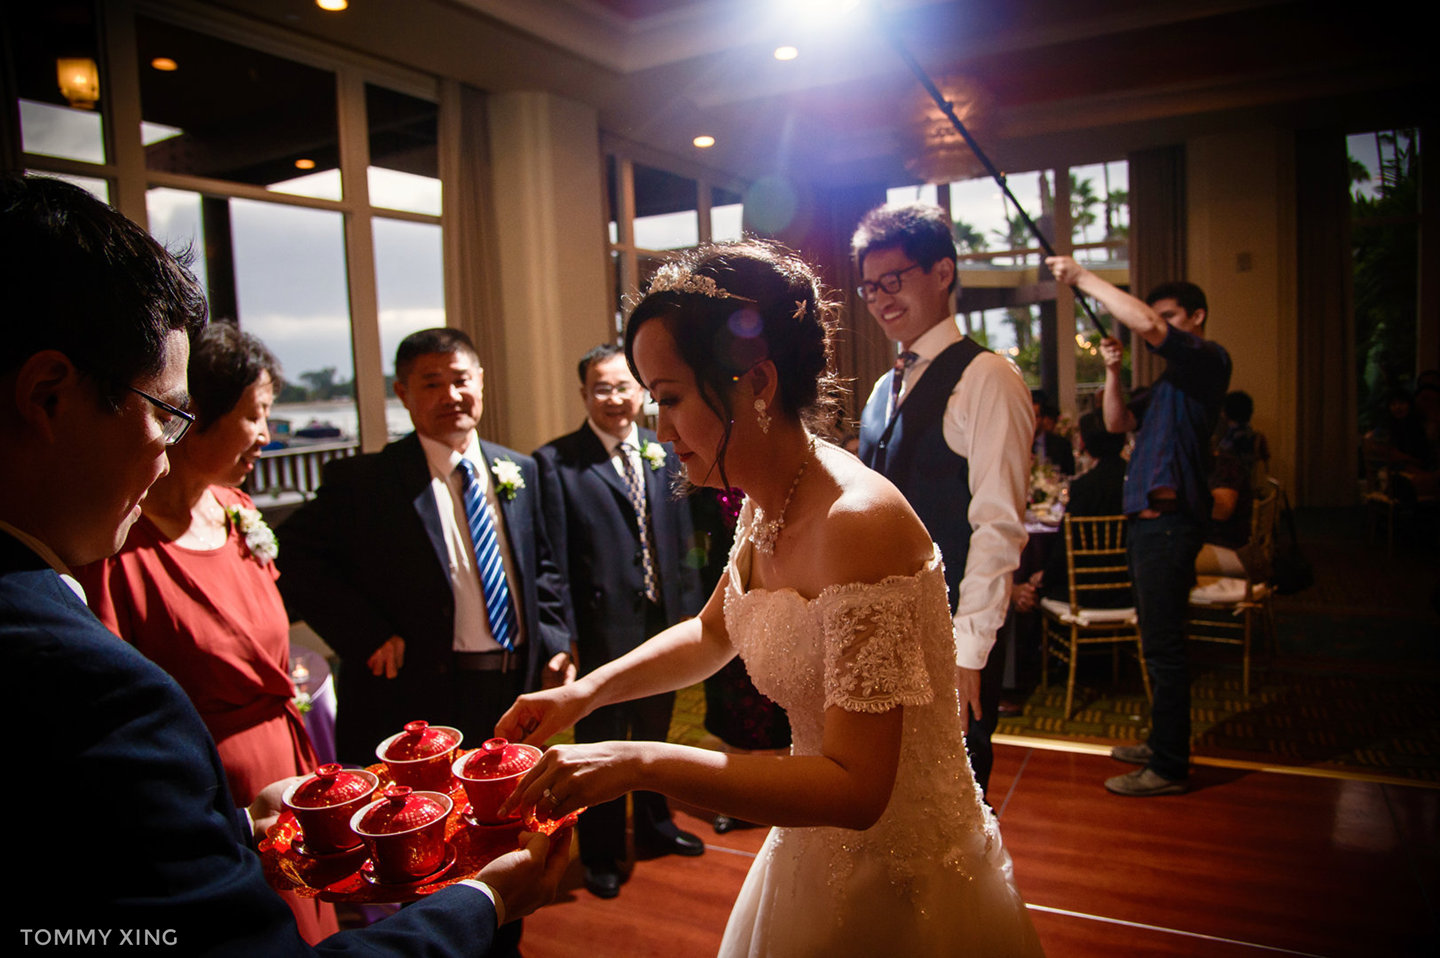 Paradise Point Resort Wedding Xiaolu & Bin San Diego 圣地亚哥婚礼摄影跟拍 Tommy Xing Photography 洛杉矶婚礼婚纱照摄影师 259.jpg